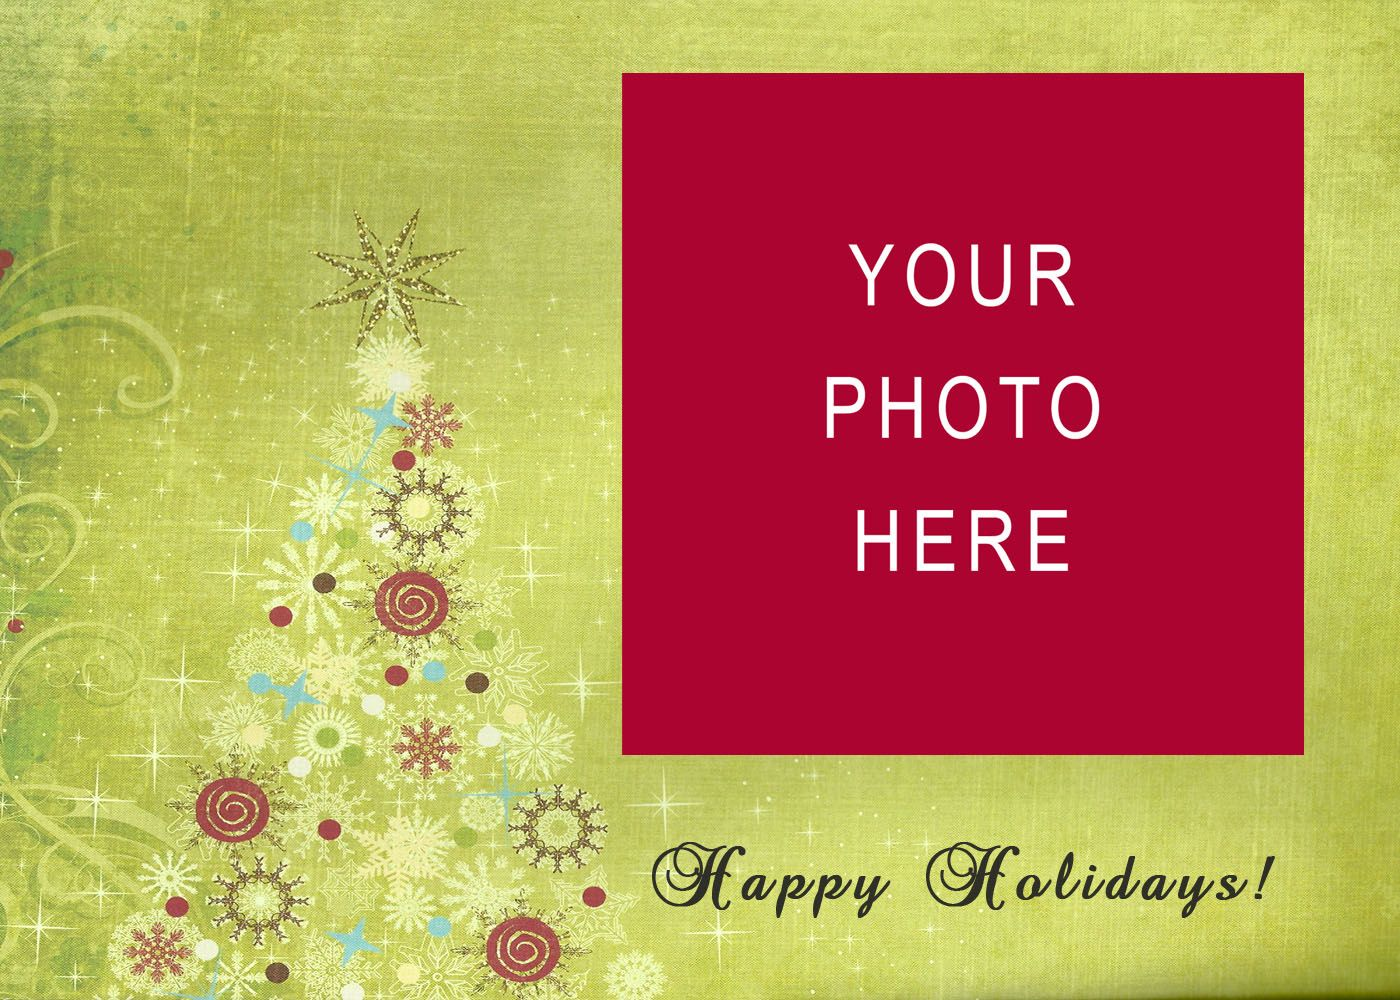 11 Christmas Card Templates Free Download Images Christmas Intended Fo Free Holiday Photo Card Templates Christmas Card Templates Free Printable Holiday Card